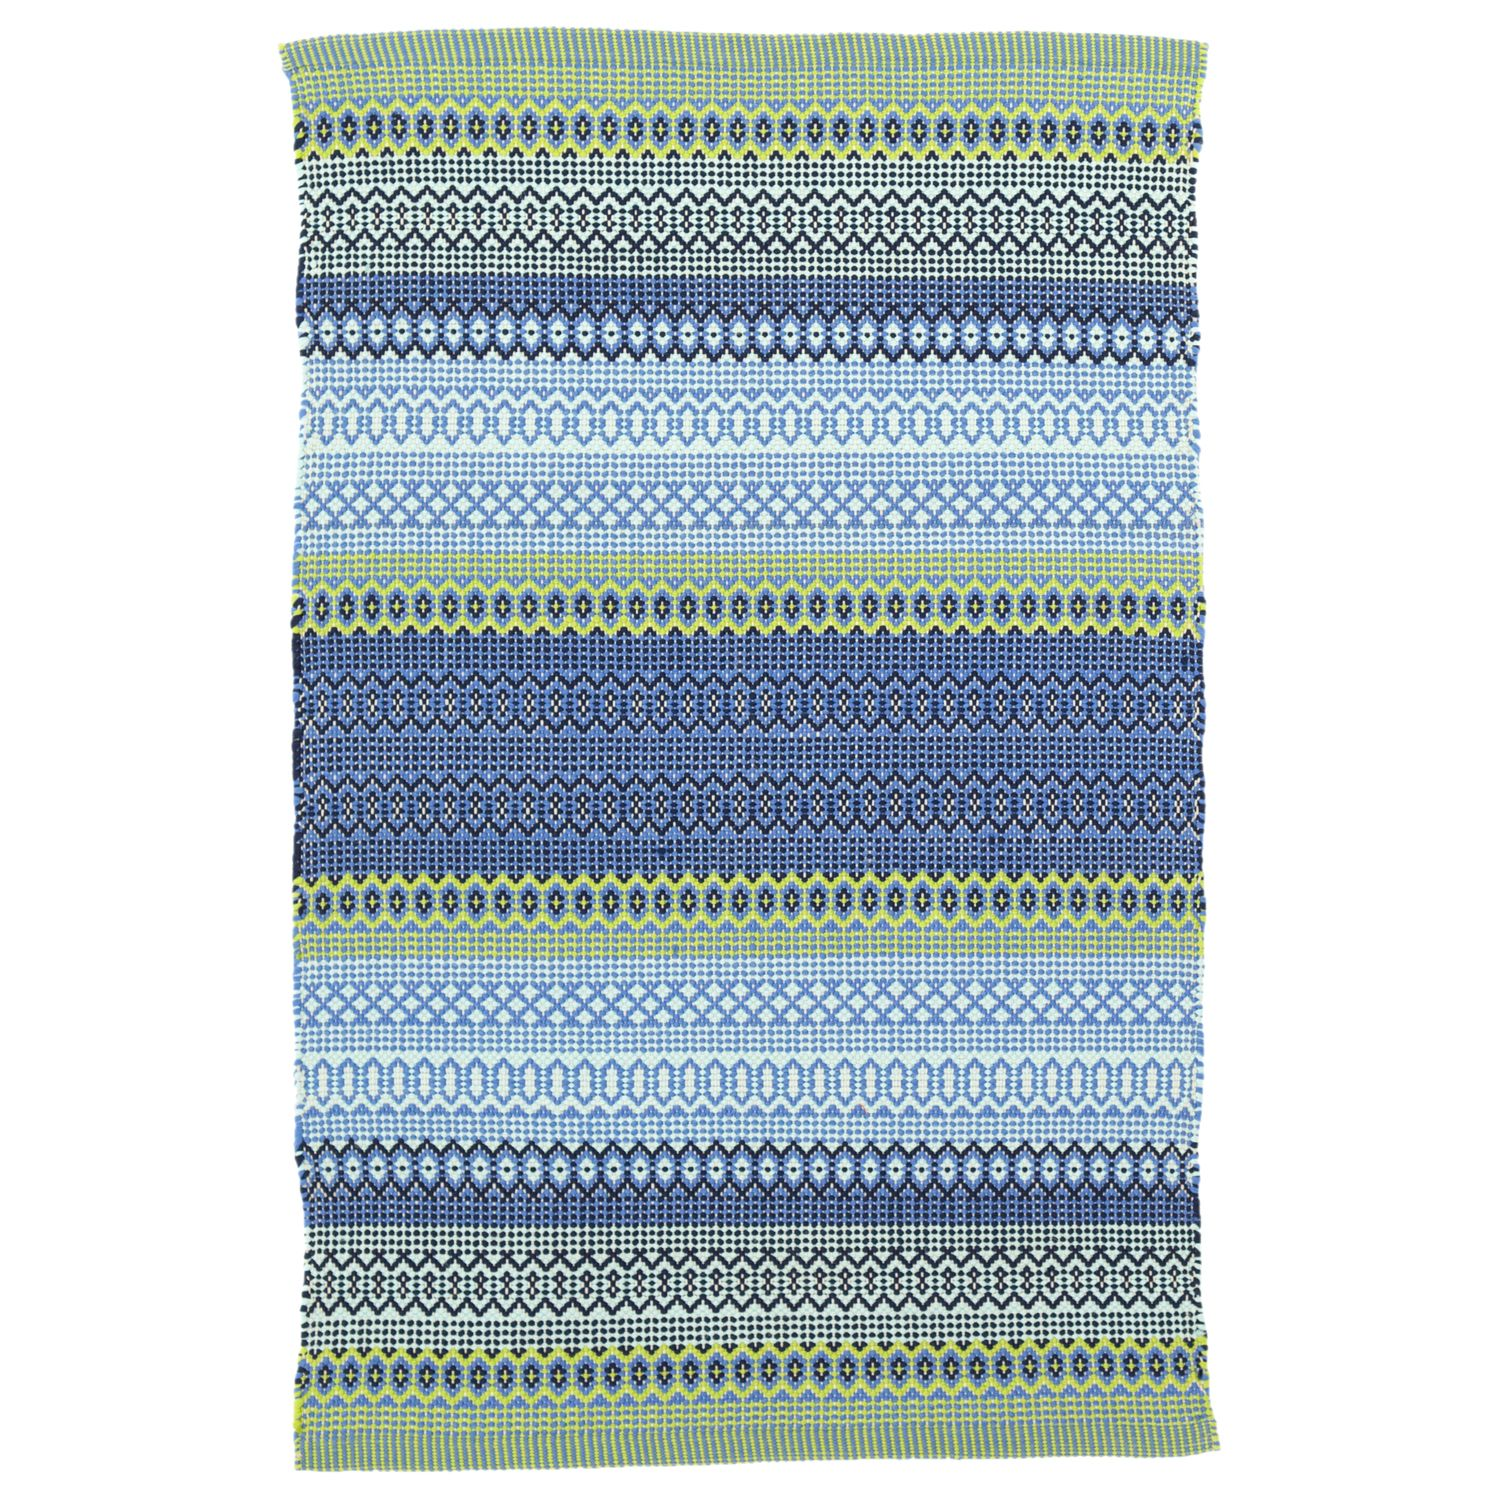 Inspired By Mexican Serape Blankets Dash Albert S Fiesta Stripe Rug Infuses Porches And Living Es With A Healthy Dose Of Global Flair